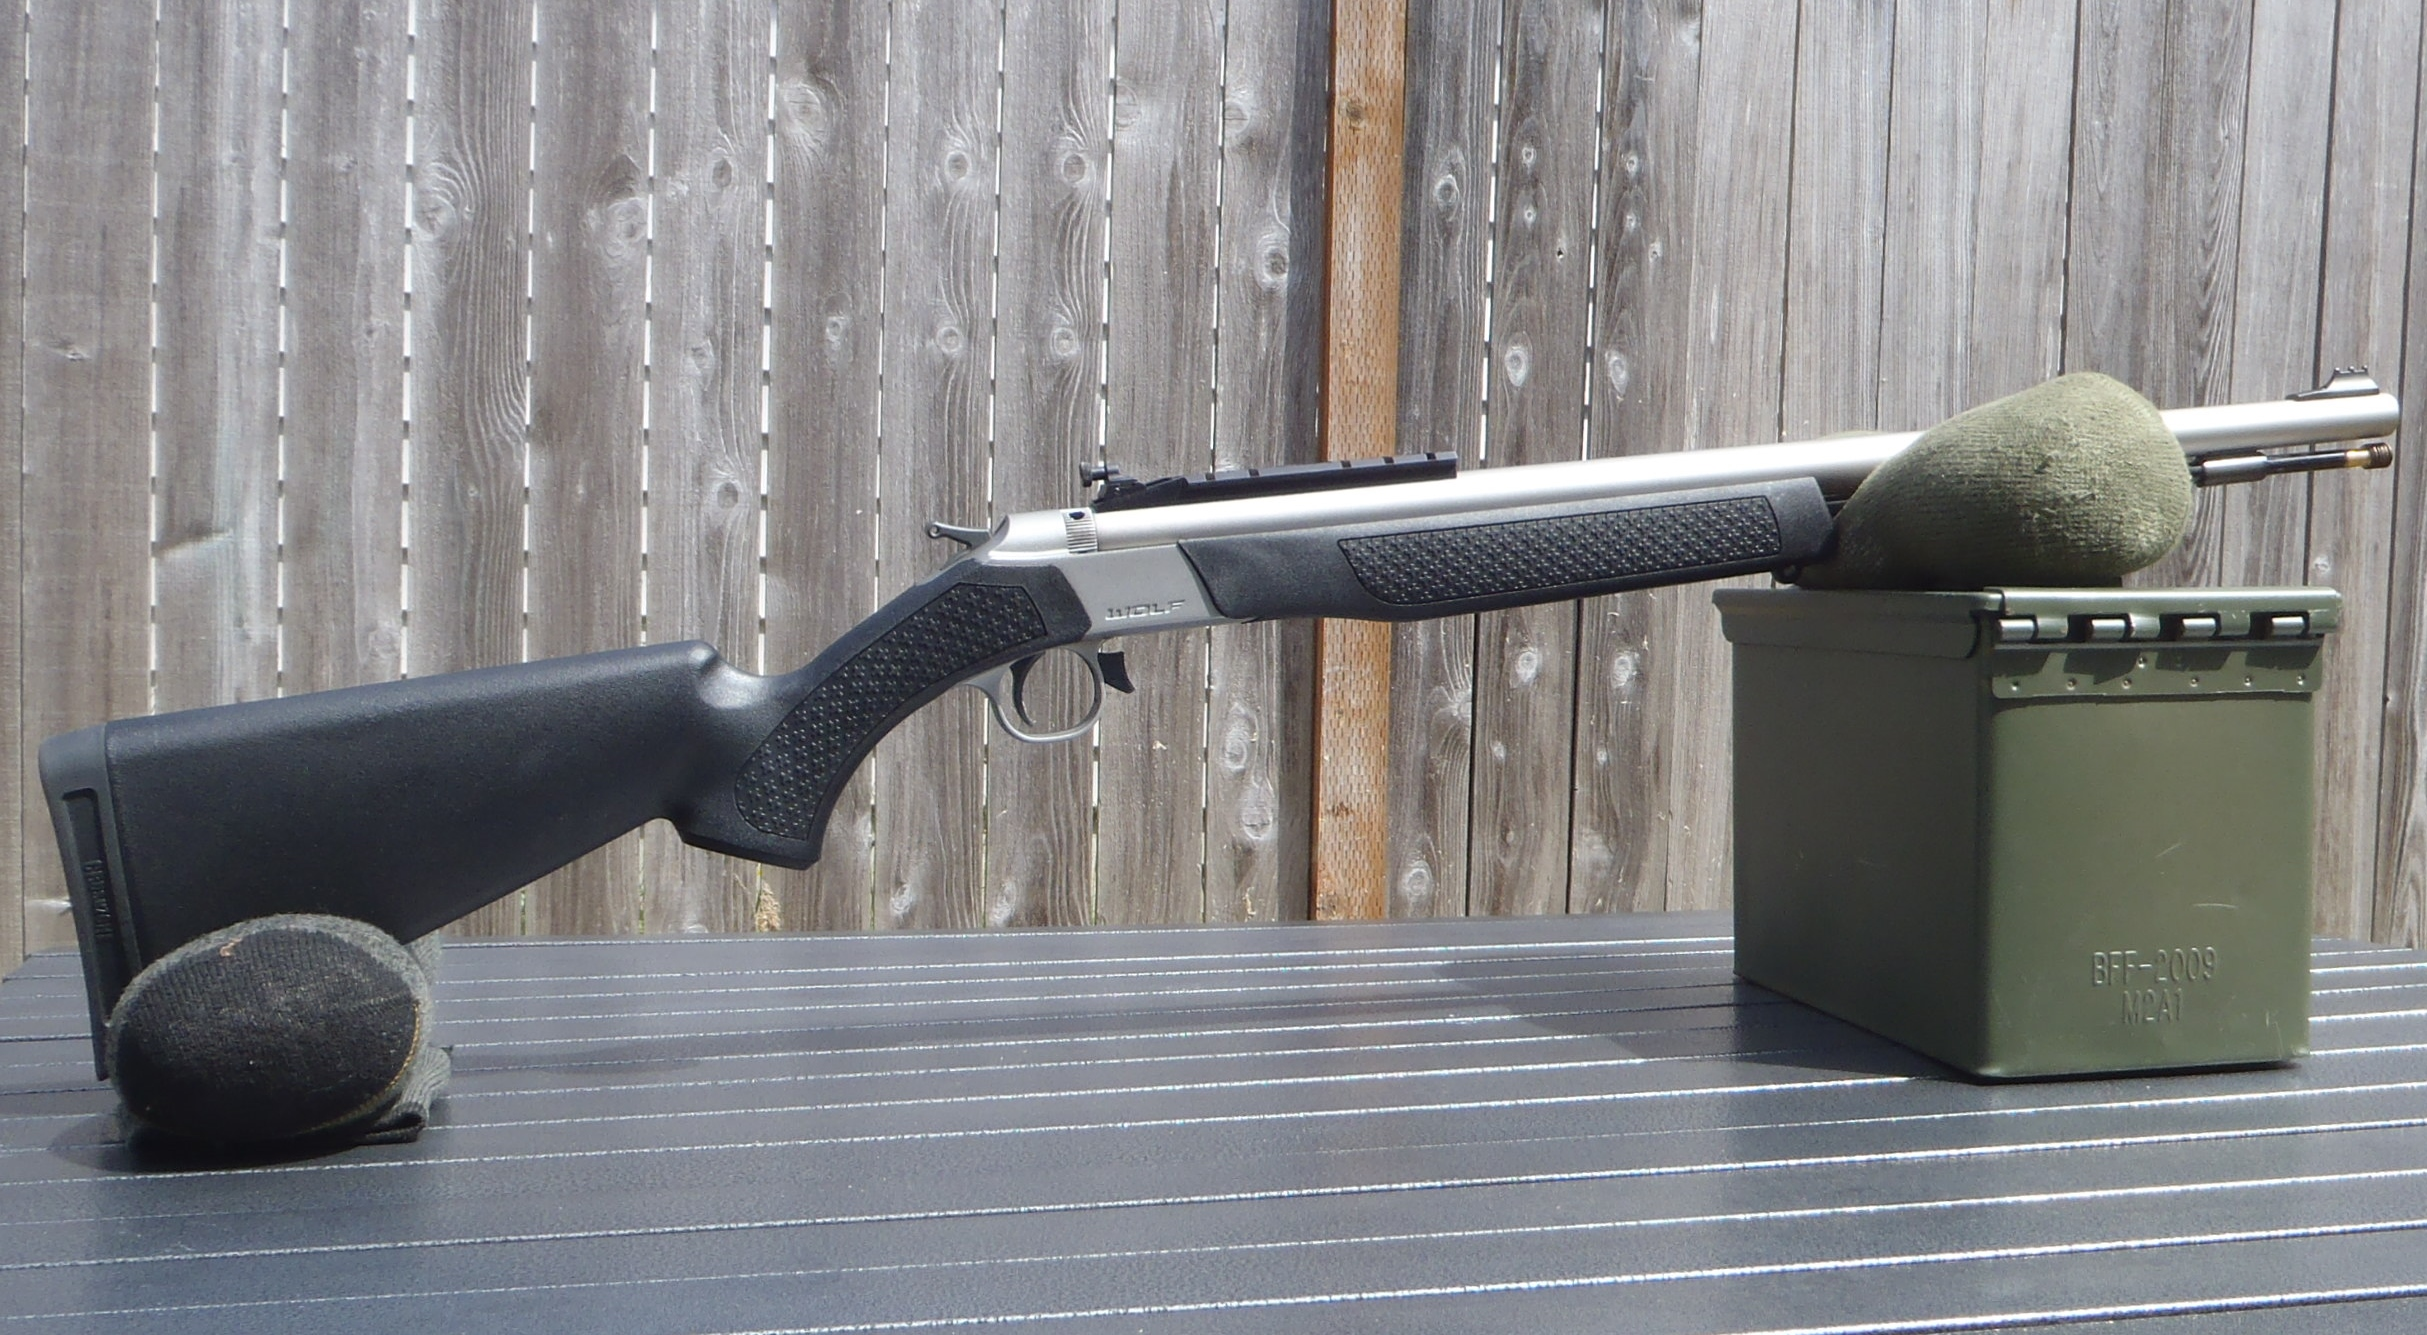 Hunting with a 45 caliber muzzleloader rifle